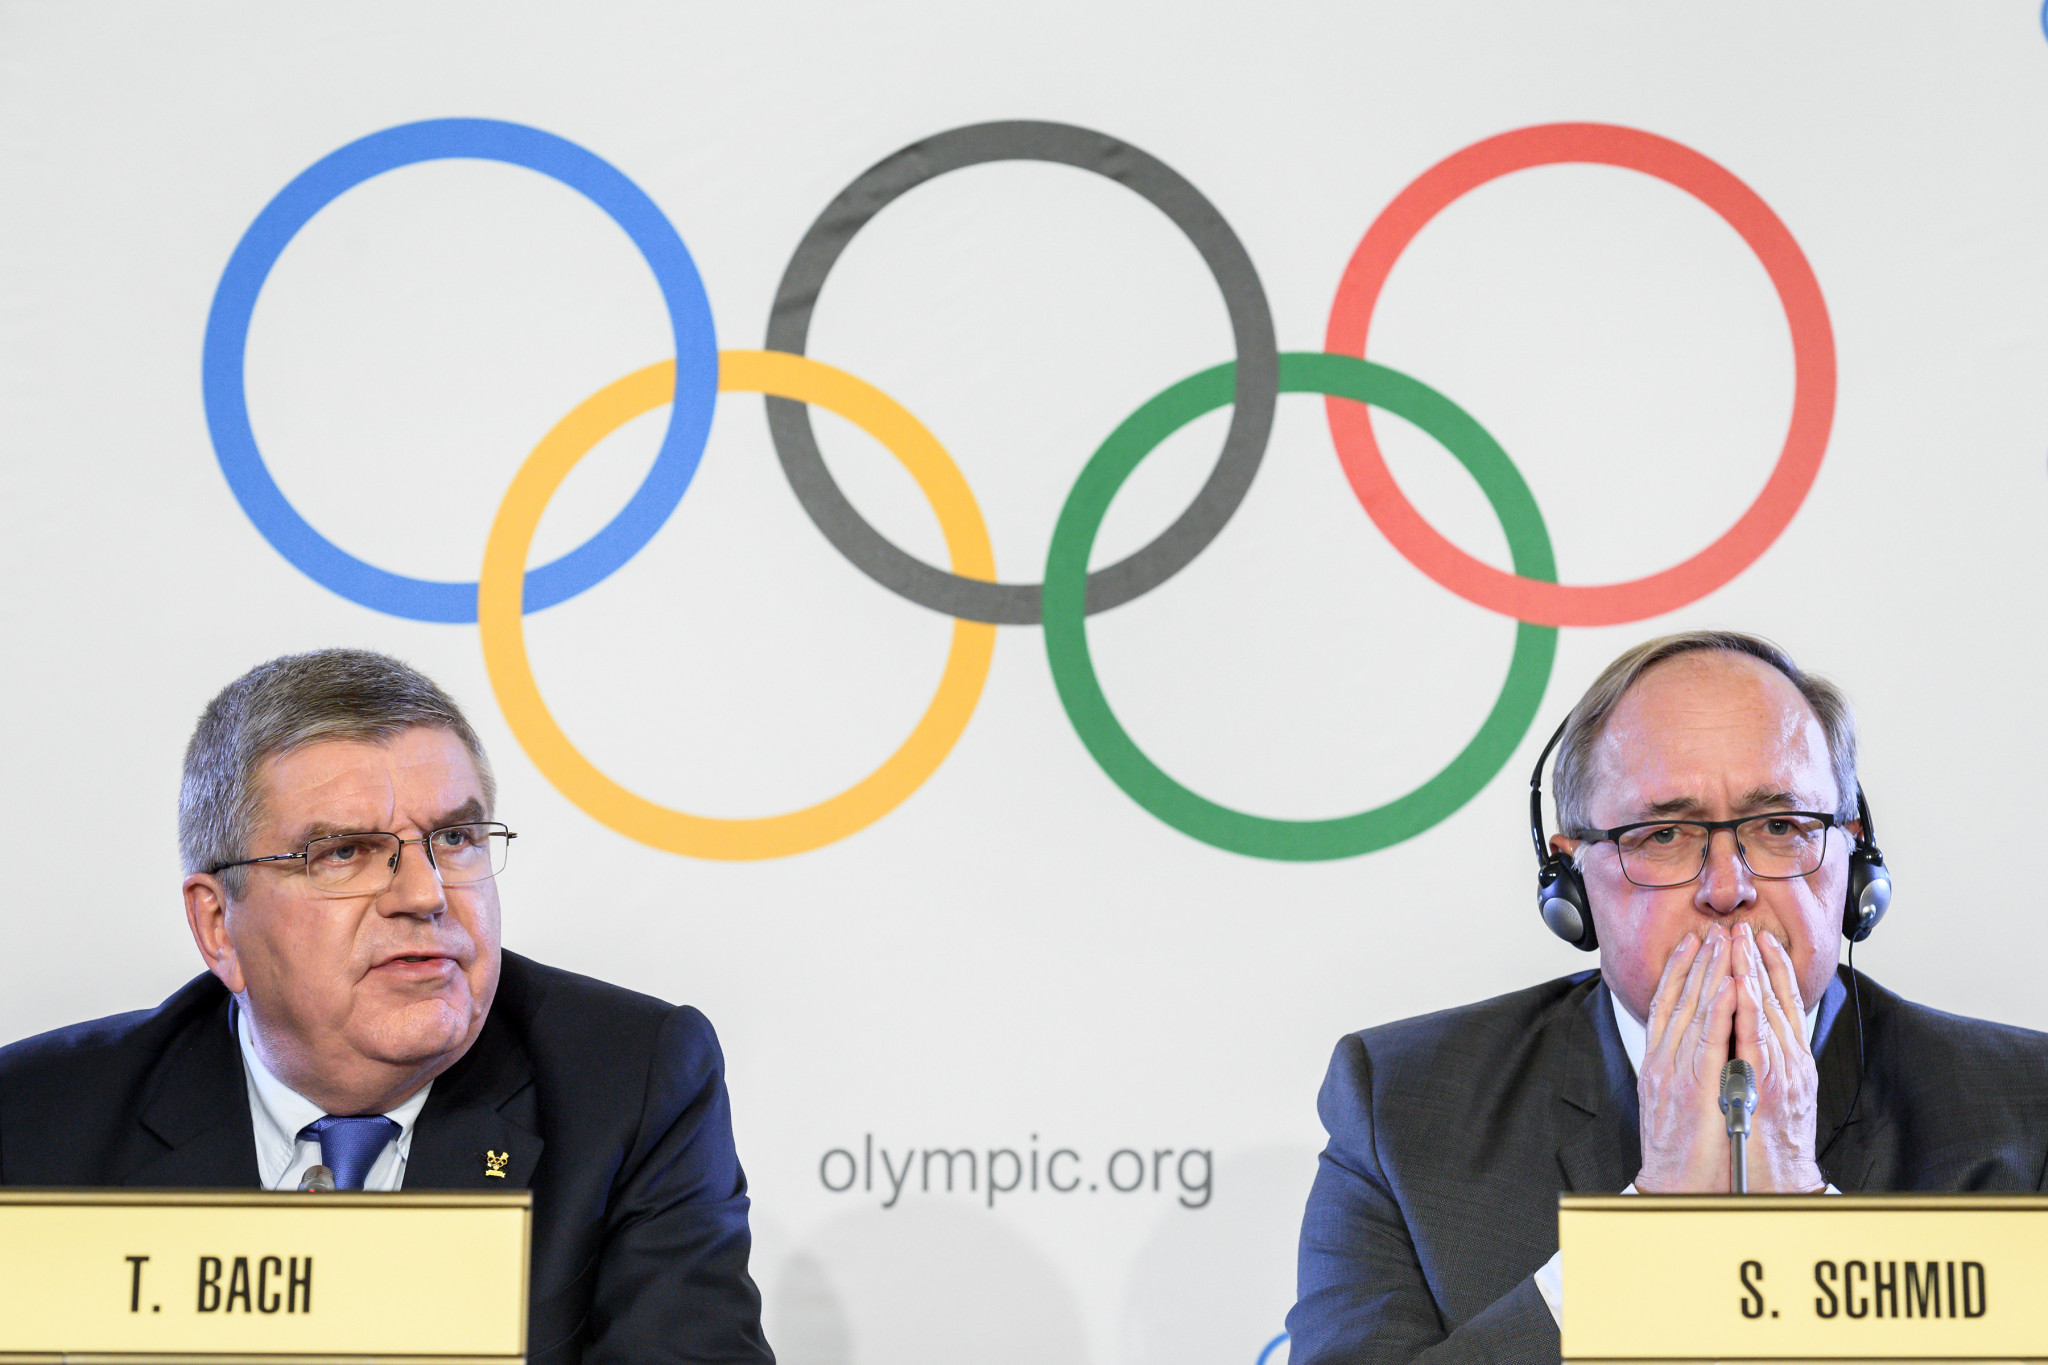 IOC President Thomas Bach, left, alongside Samuel Schmid during the announcement today ©Getty Images